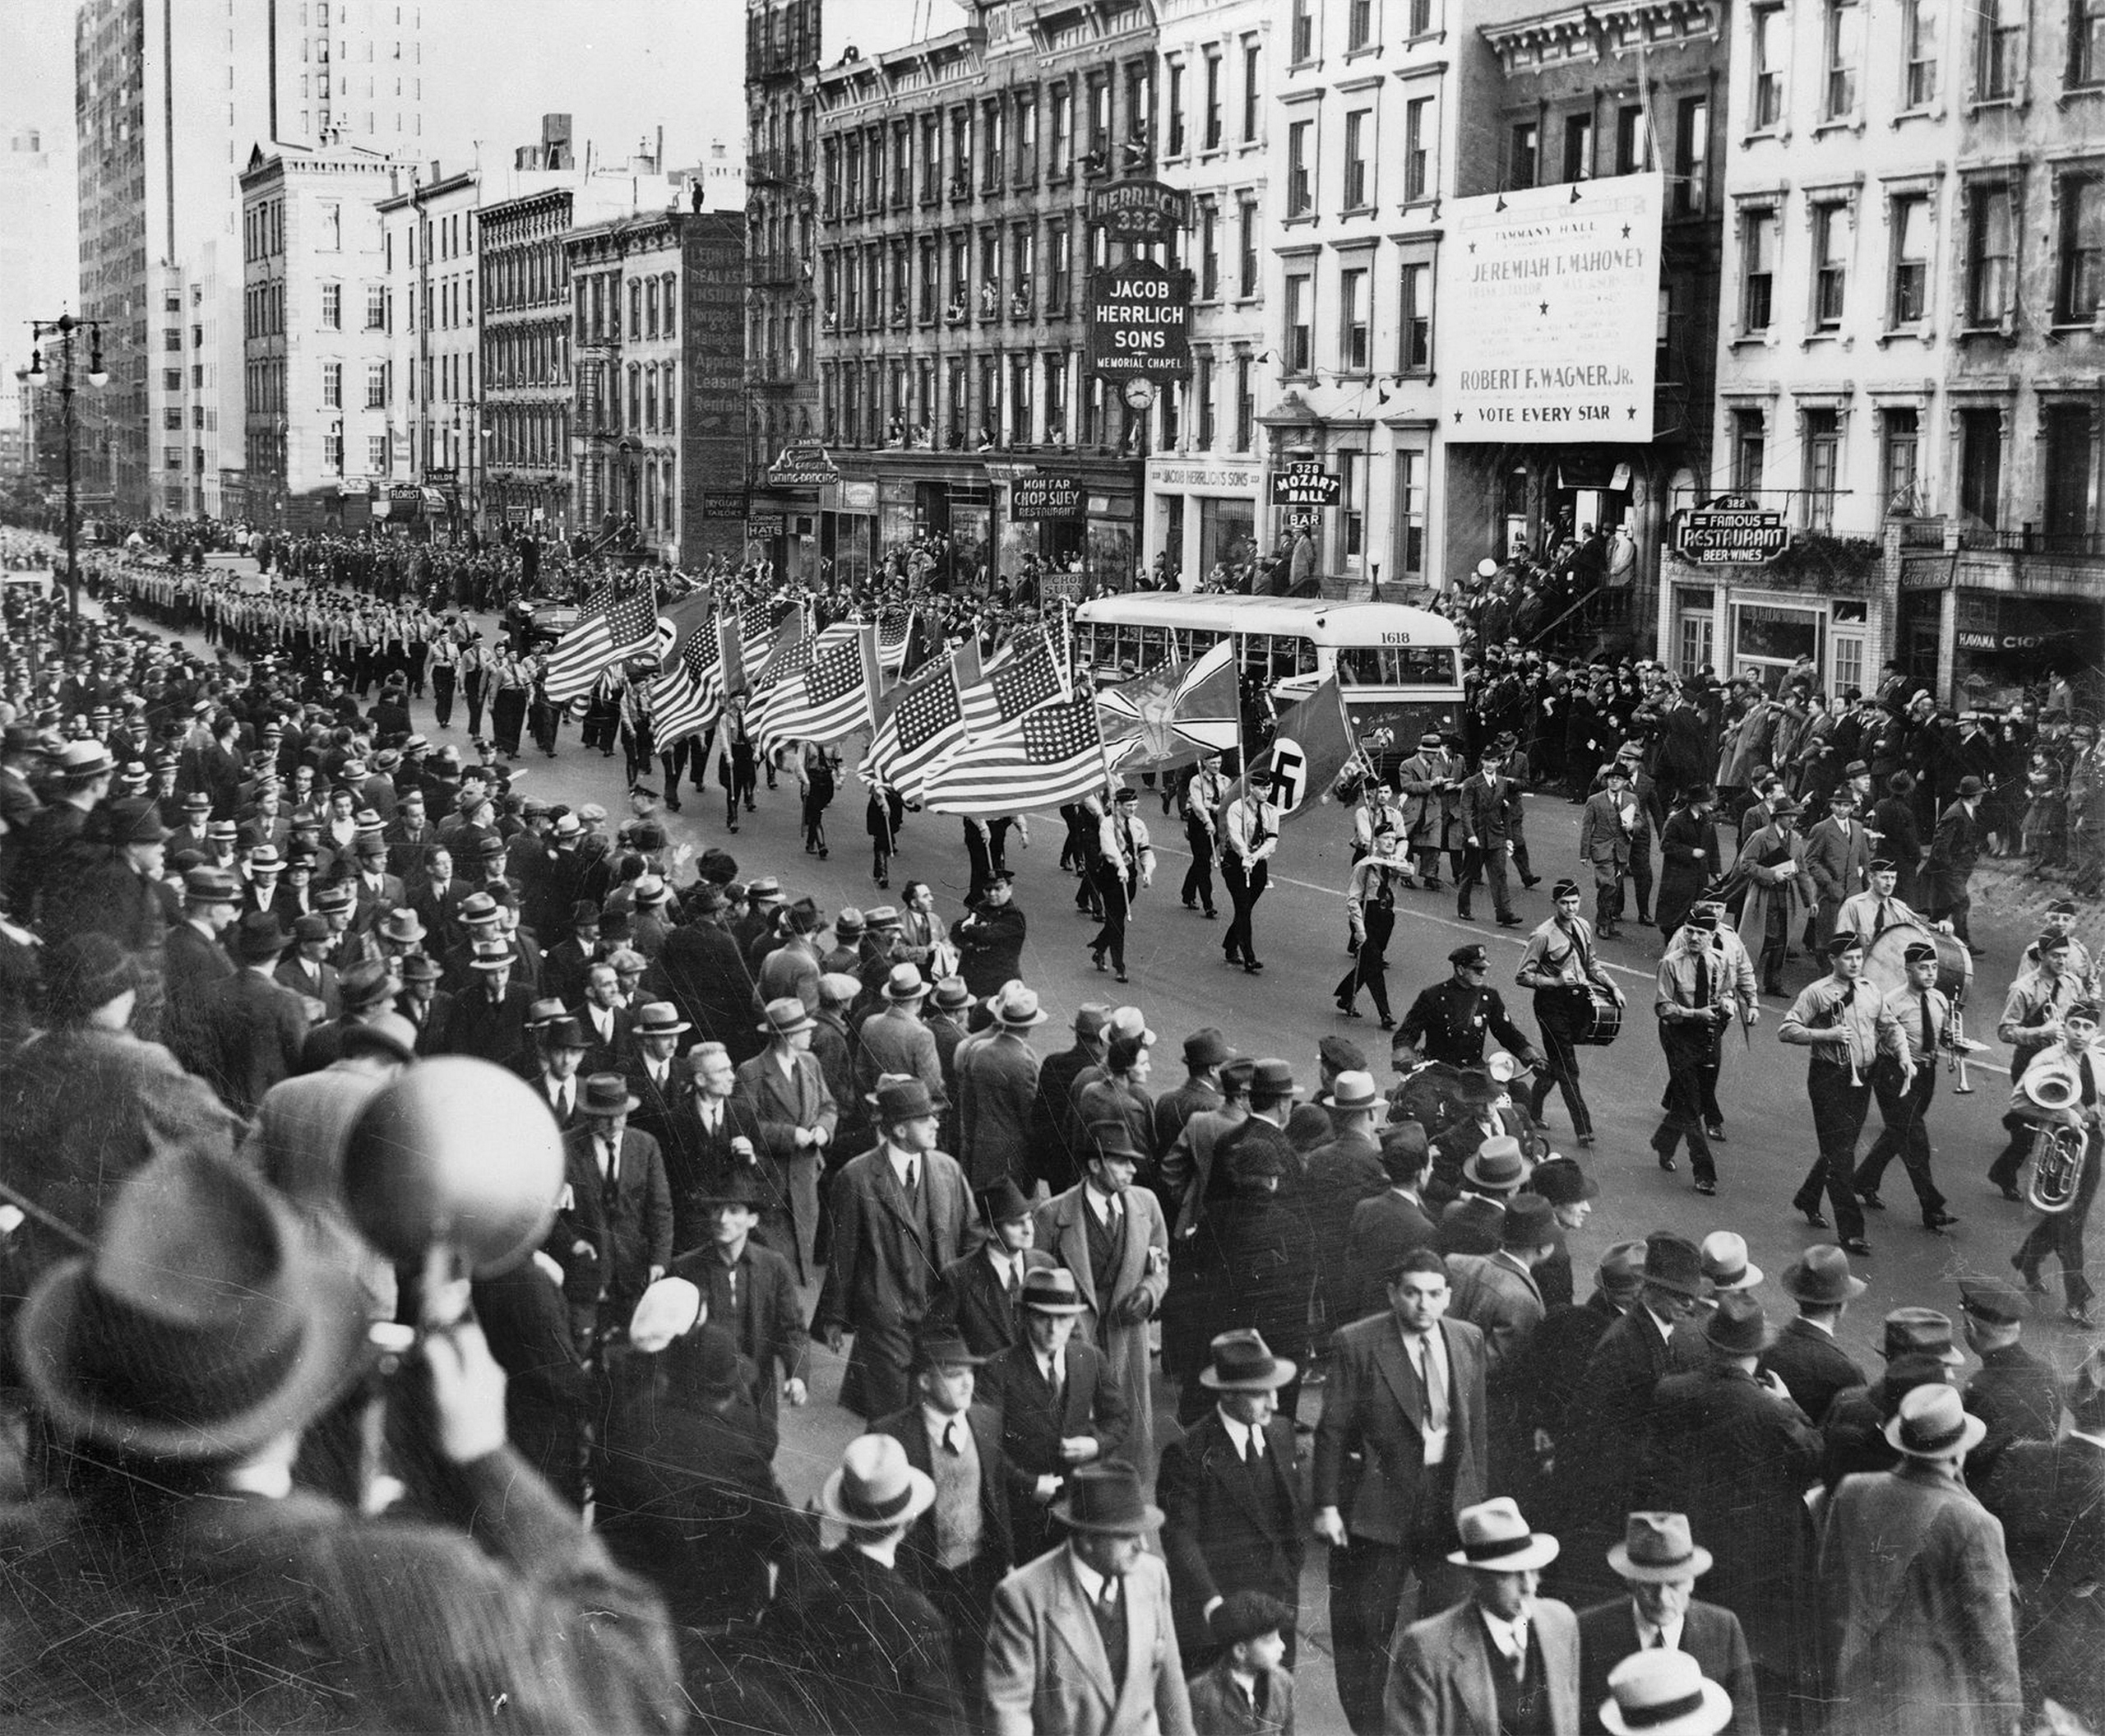 American Nazis parade on East 86th St. in New York City around 1939.